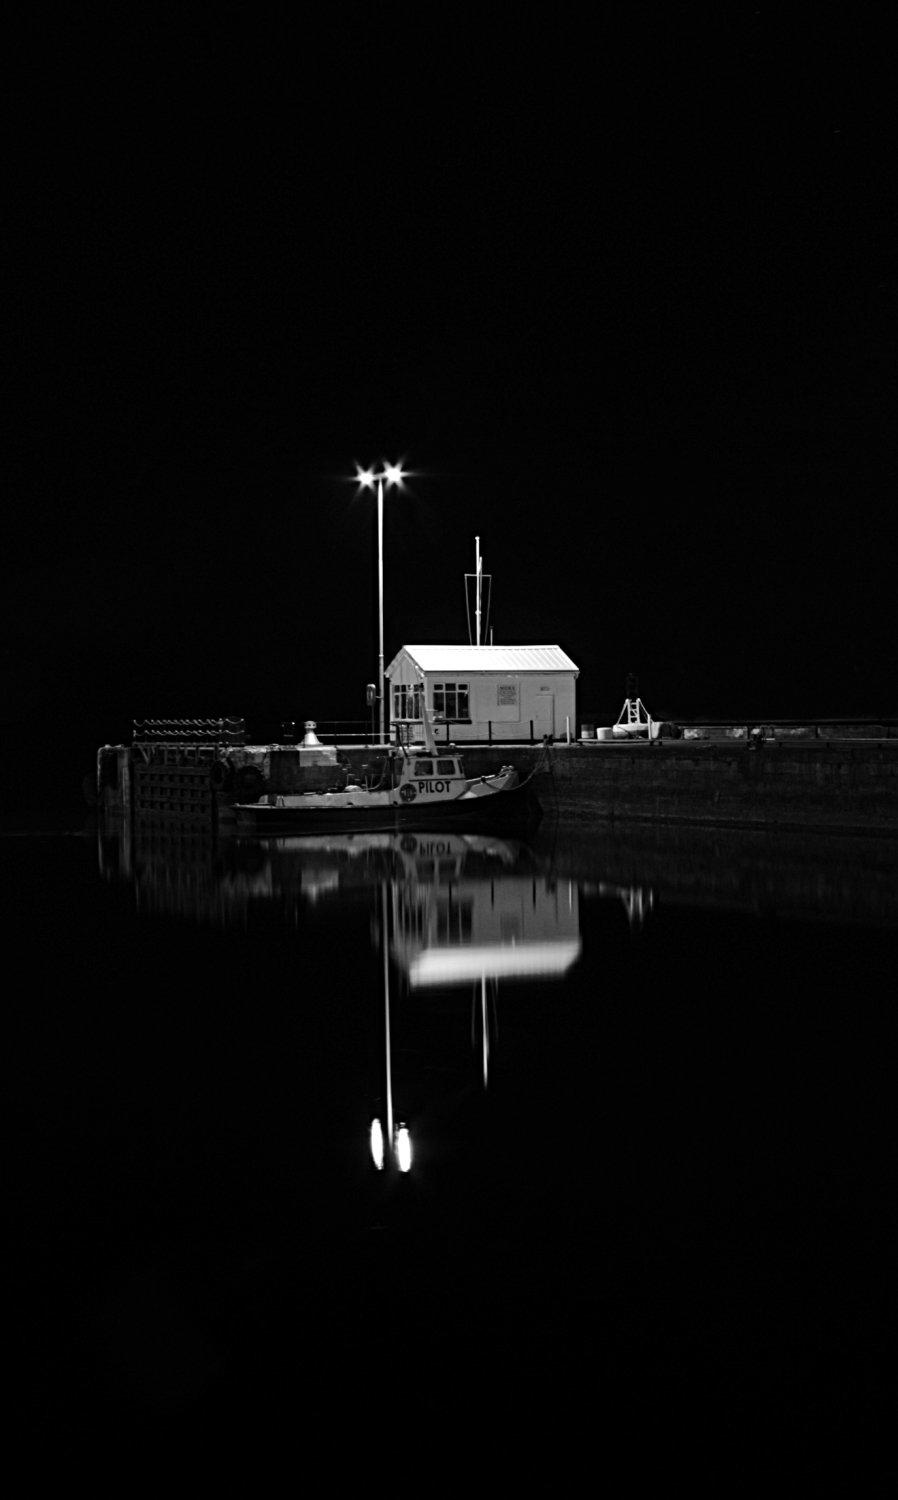 Galway docks at night